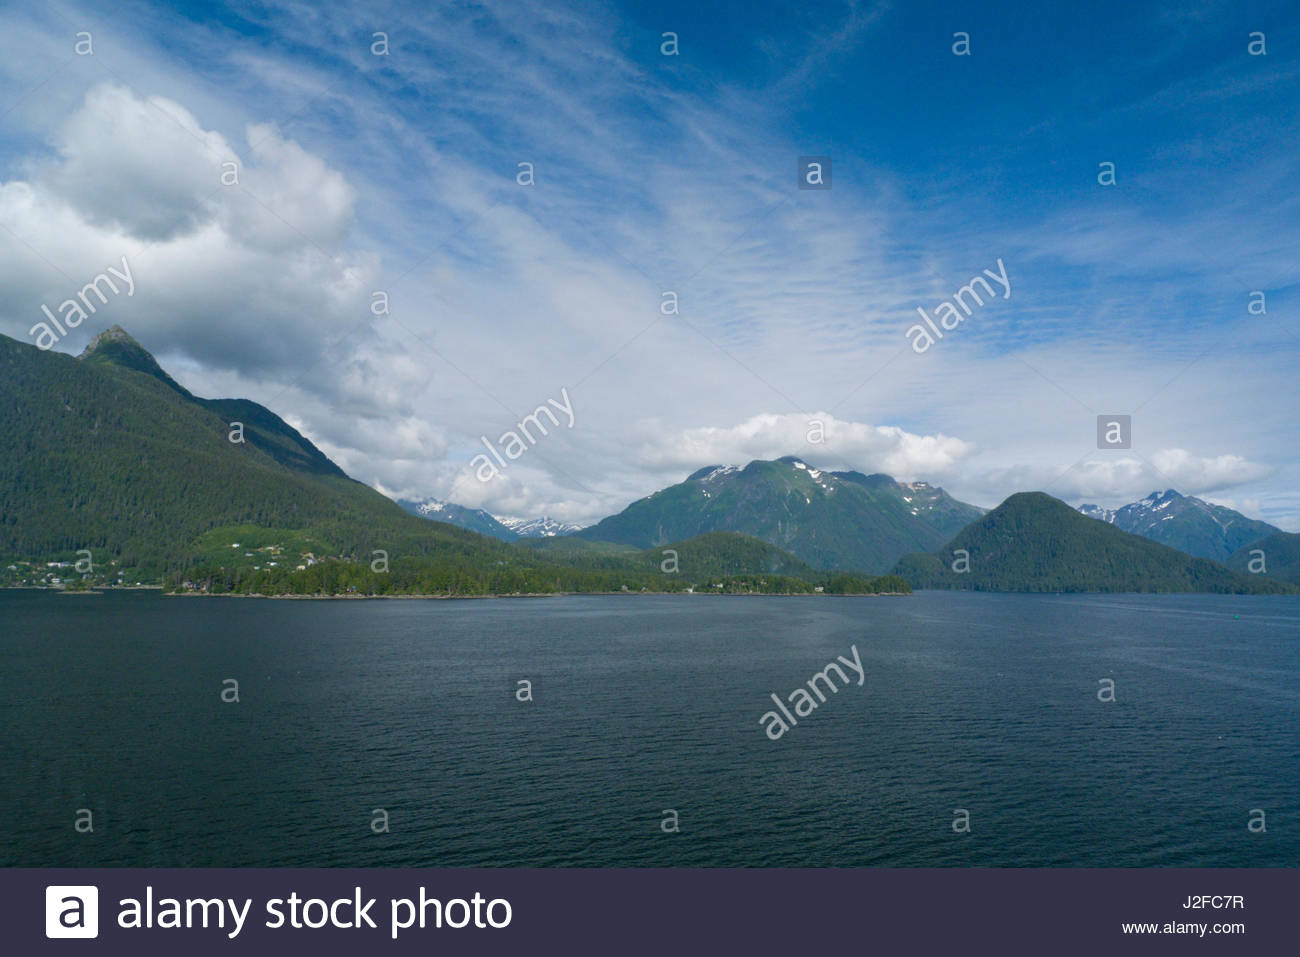 View of the Tongass National Forest from Eastern Channel of Sitka Sound, Alaska, USA - Stock Image